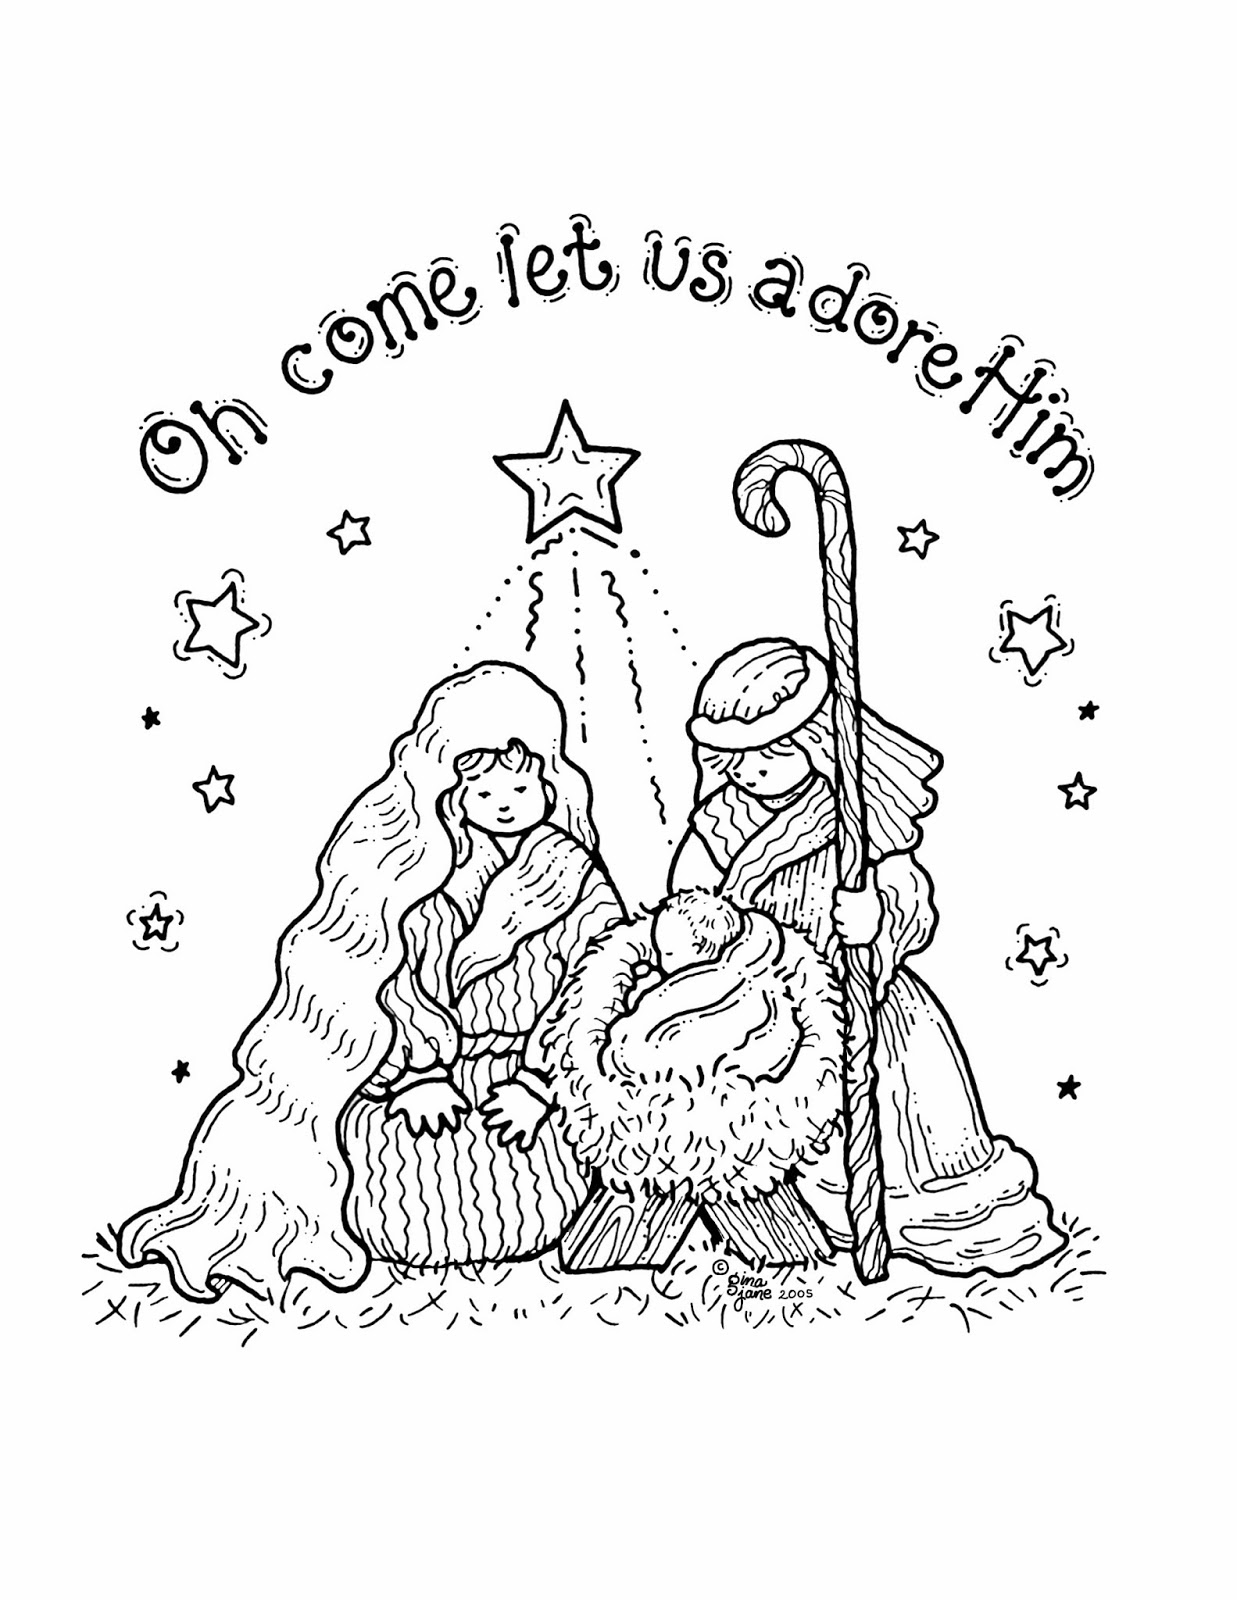 photograph about Nativity Coloring Pages Printable identify Totally free Printable Nativity Coloring Internet pages for Children - Perfect